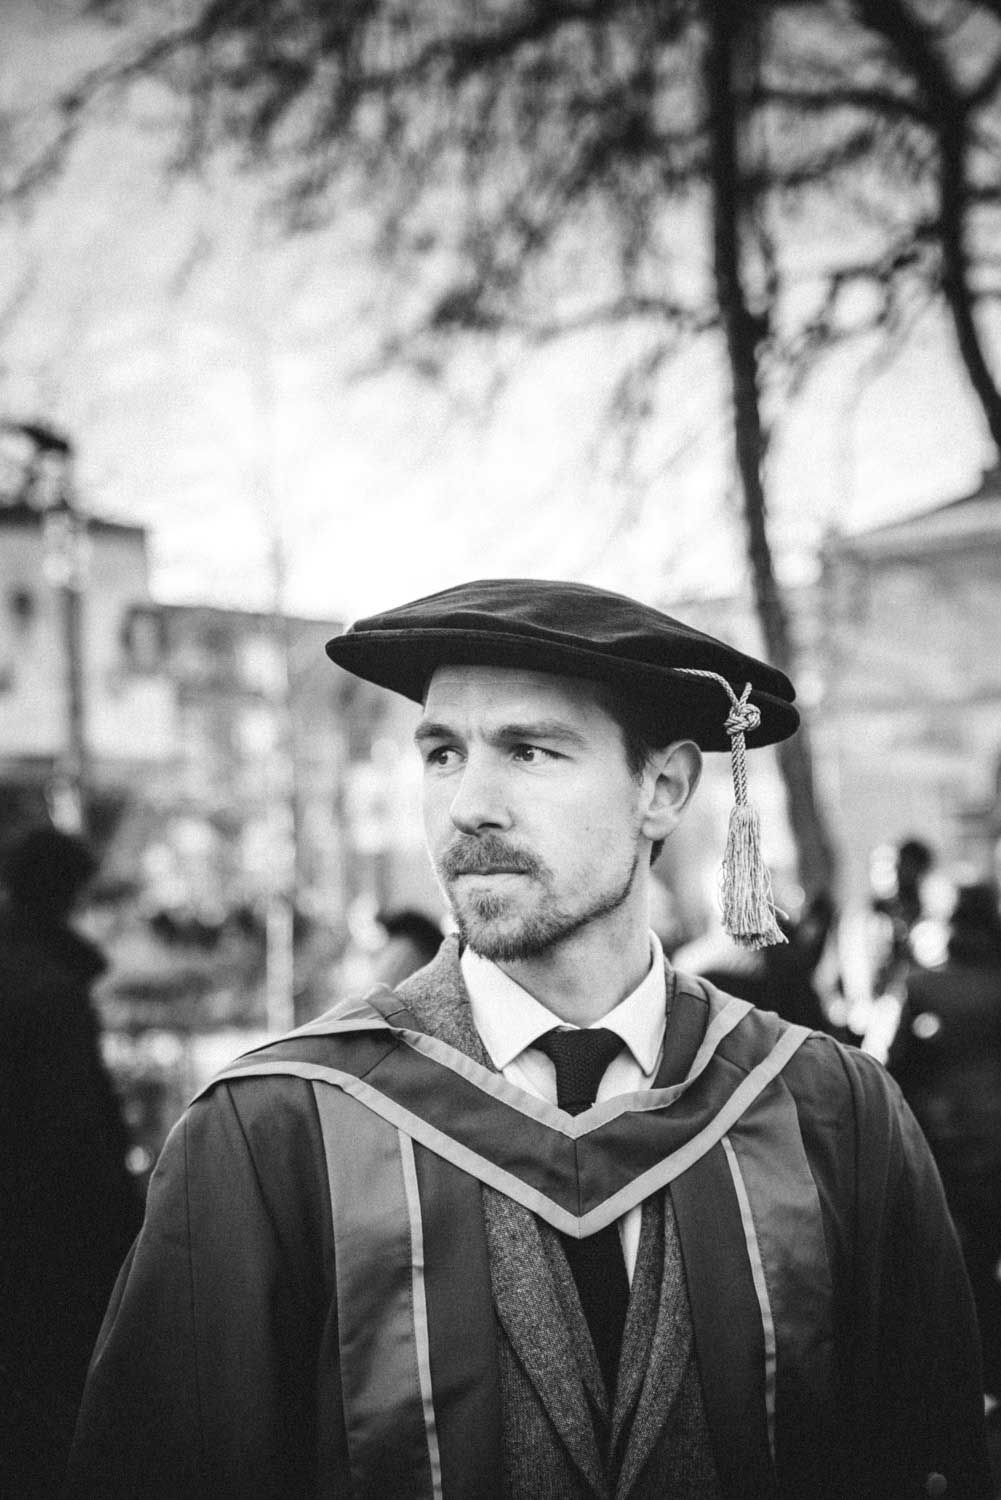 Young man wears his Ph.D graduating gown and hat staring into the distance